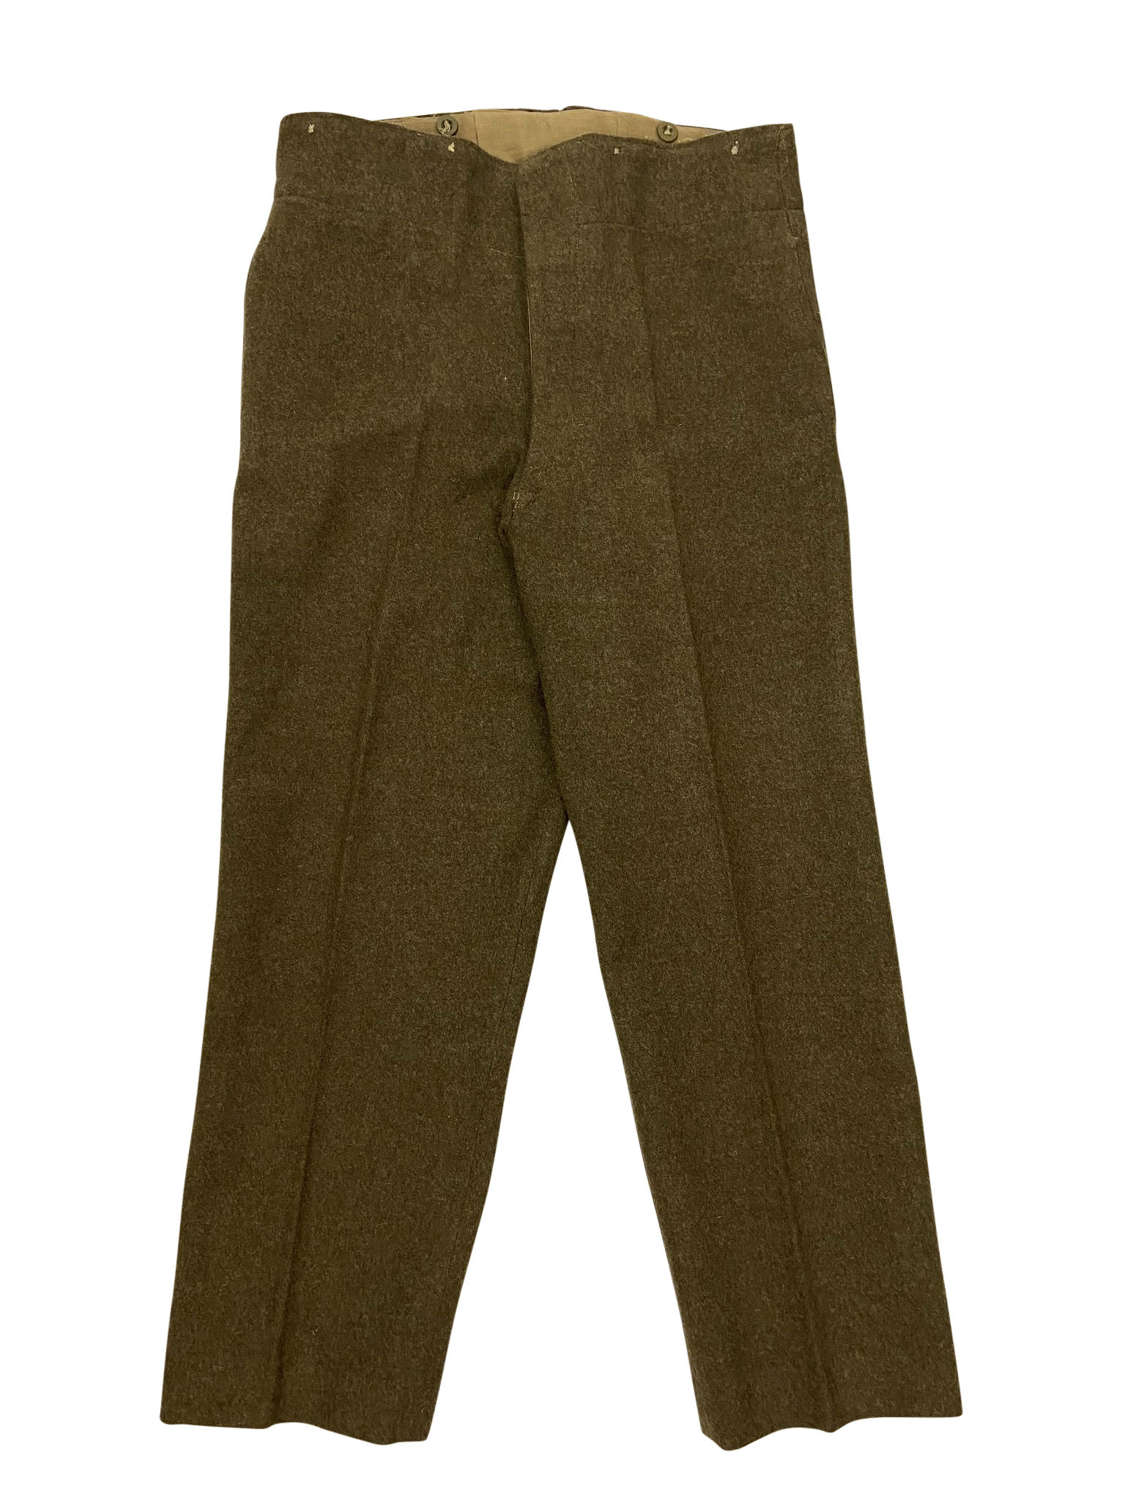 Original WW2 British 1940 Pattern (Austerity) Battledress Trousers